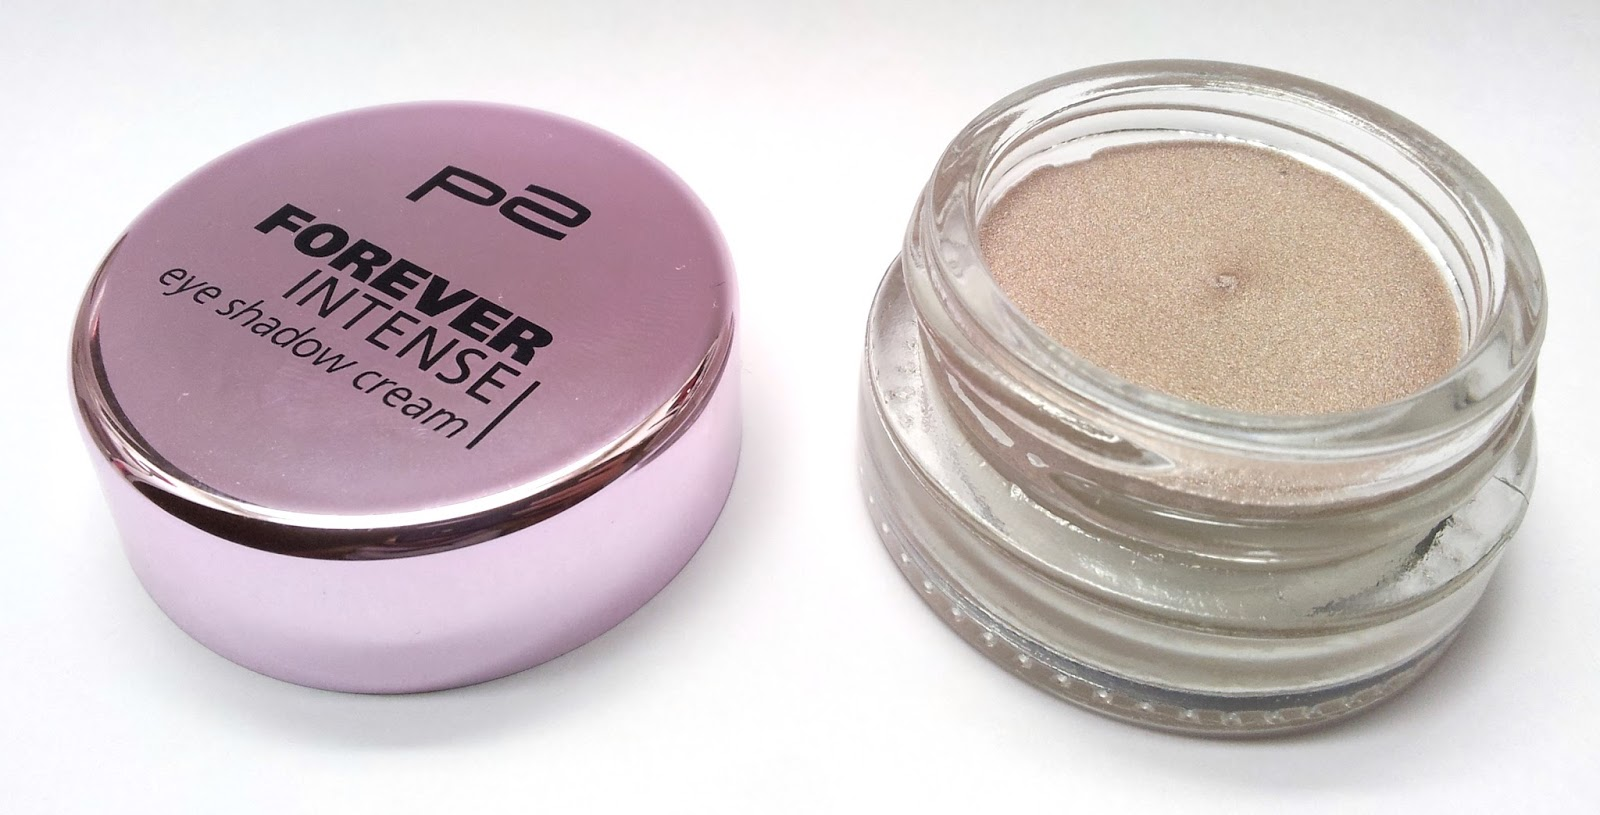 p2: Forever intense eye shadow cream 050 just can't wait